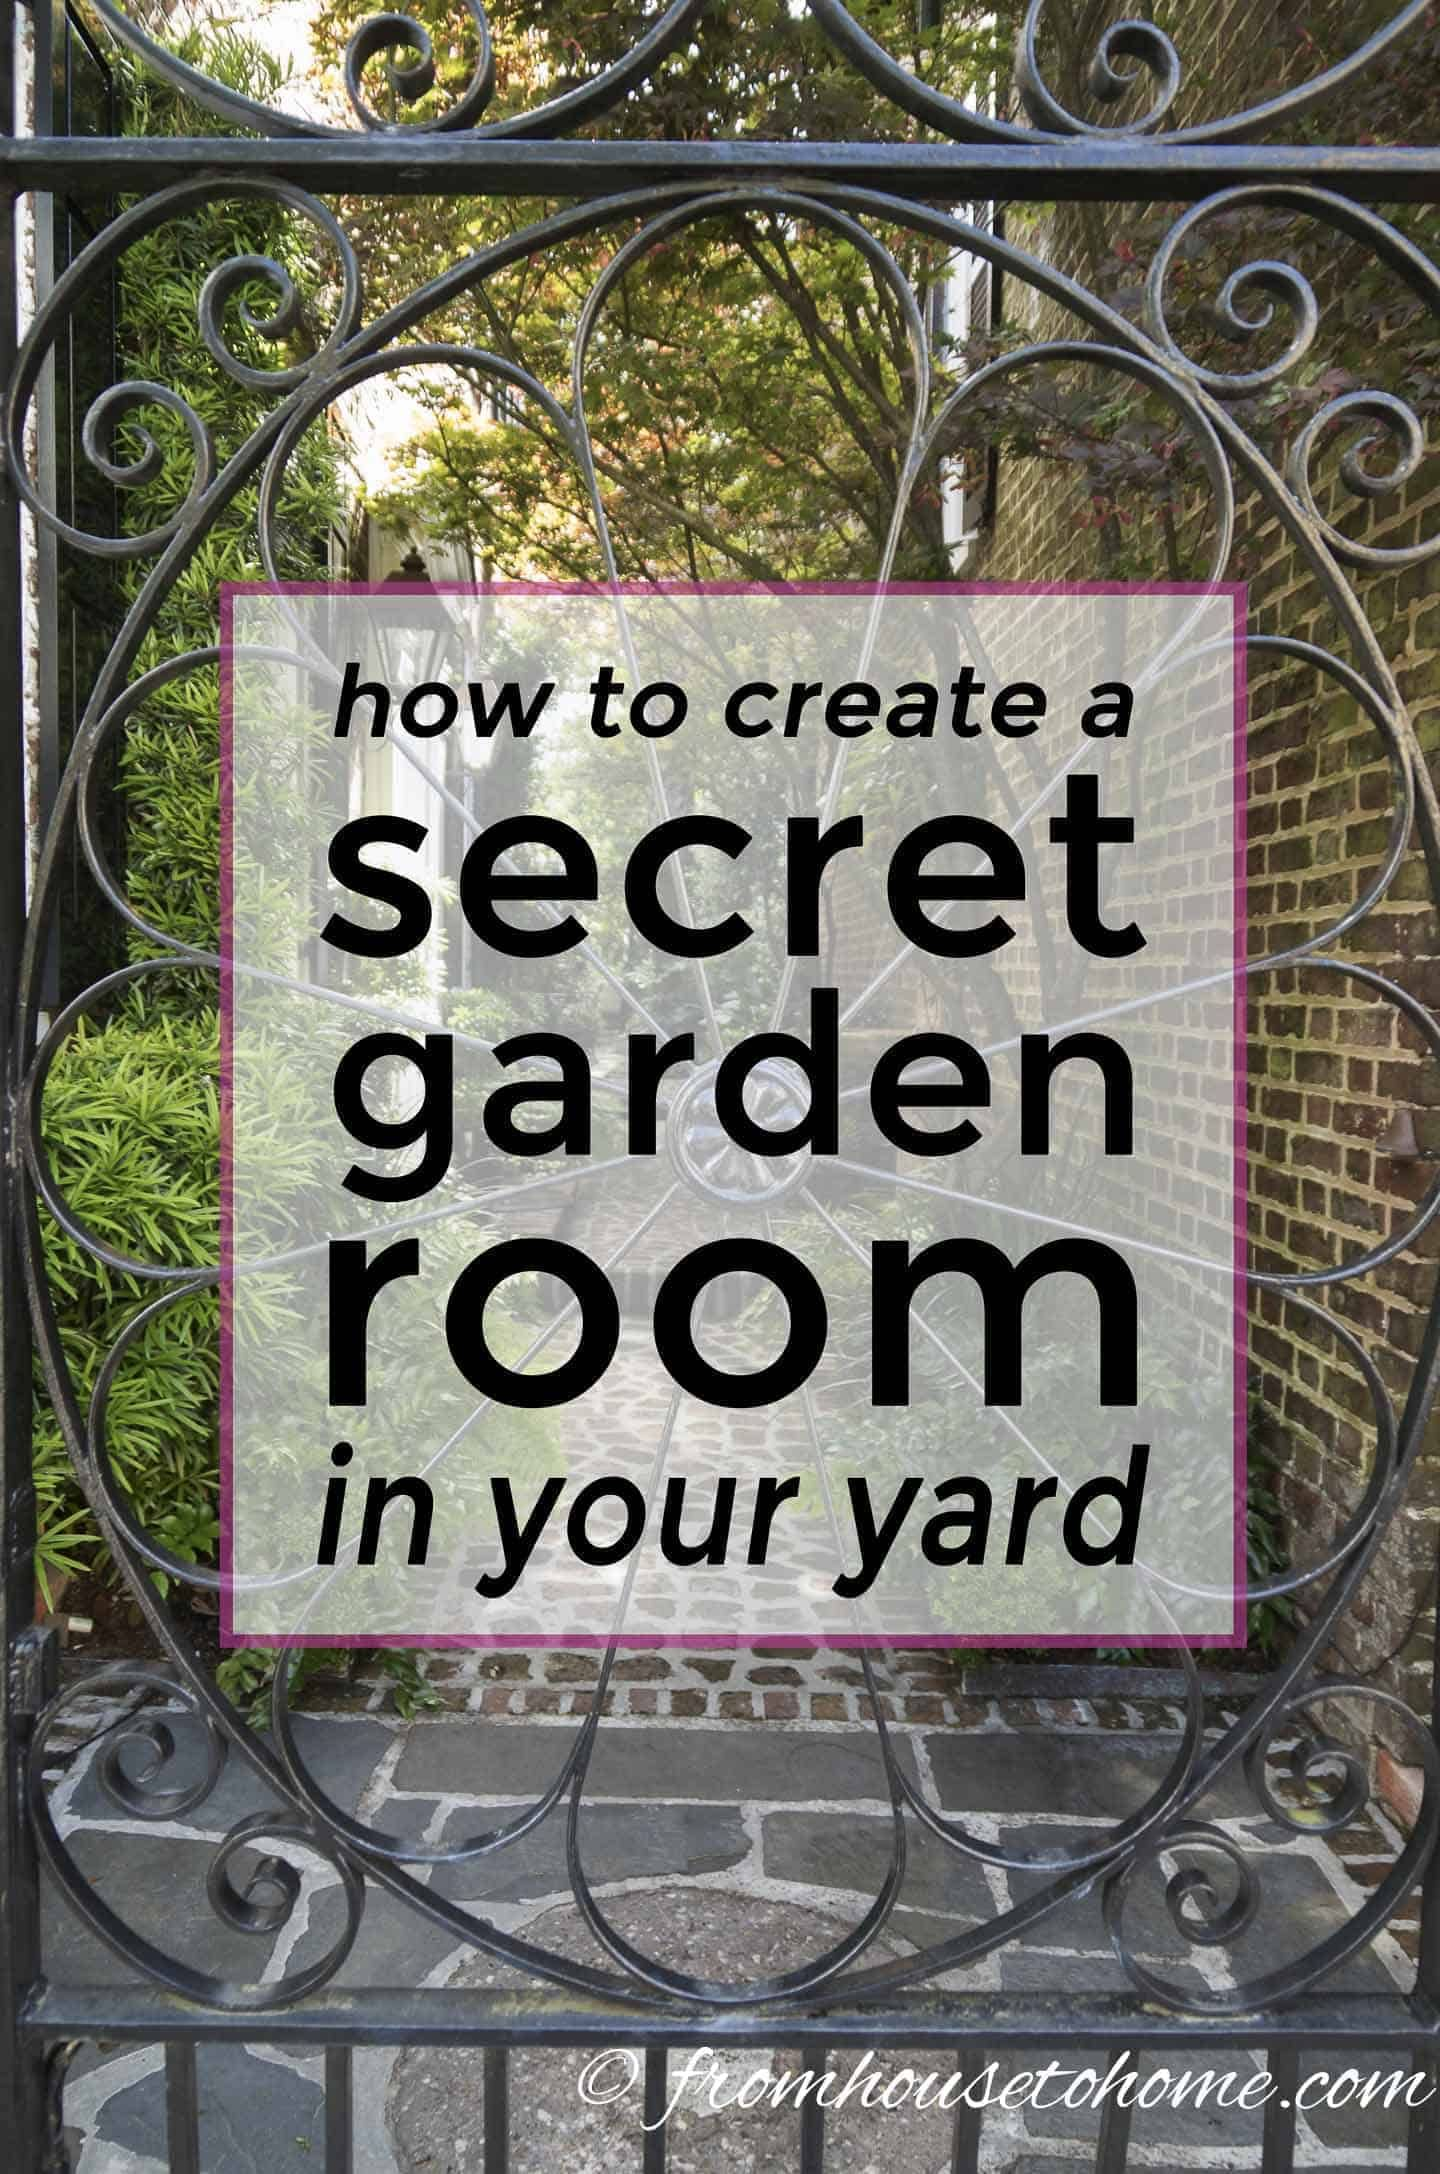 Secret Garden Design Ideas: How To Create Your Own Garden Room - Gardening @ From House To Home